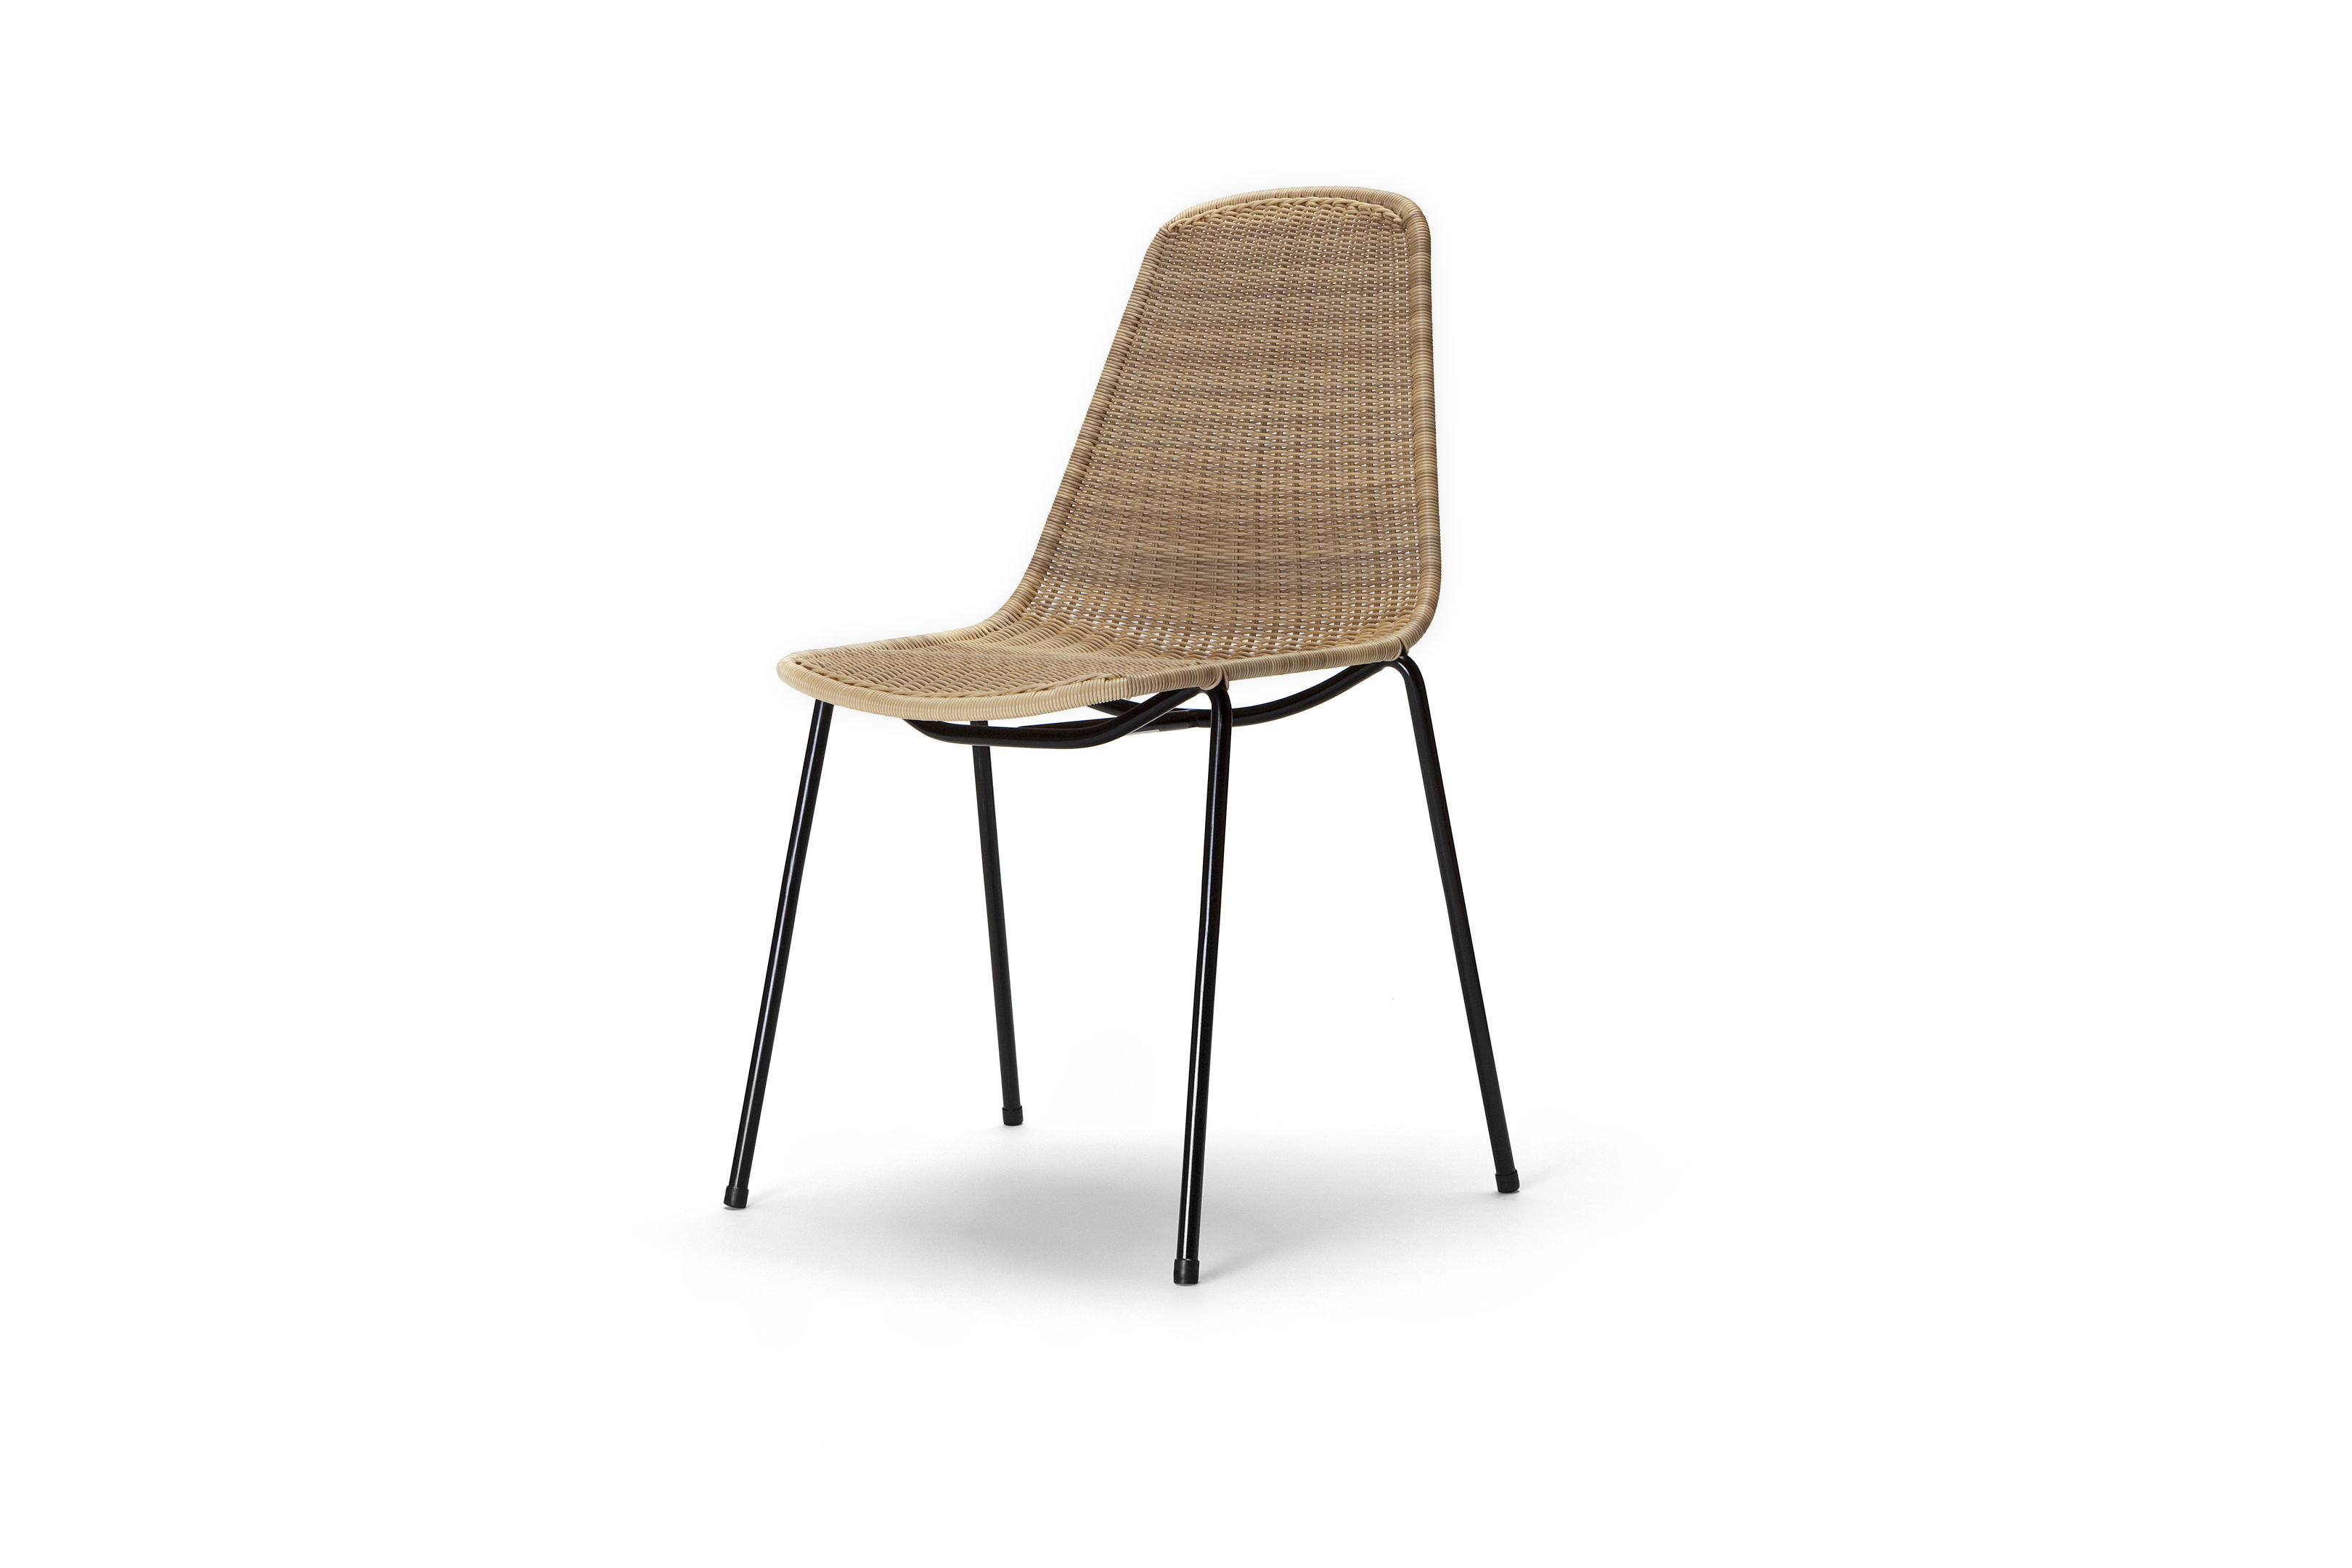 id woven chairs furniture for l basket at f pair lounge adnet style jacques of chair sale seating